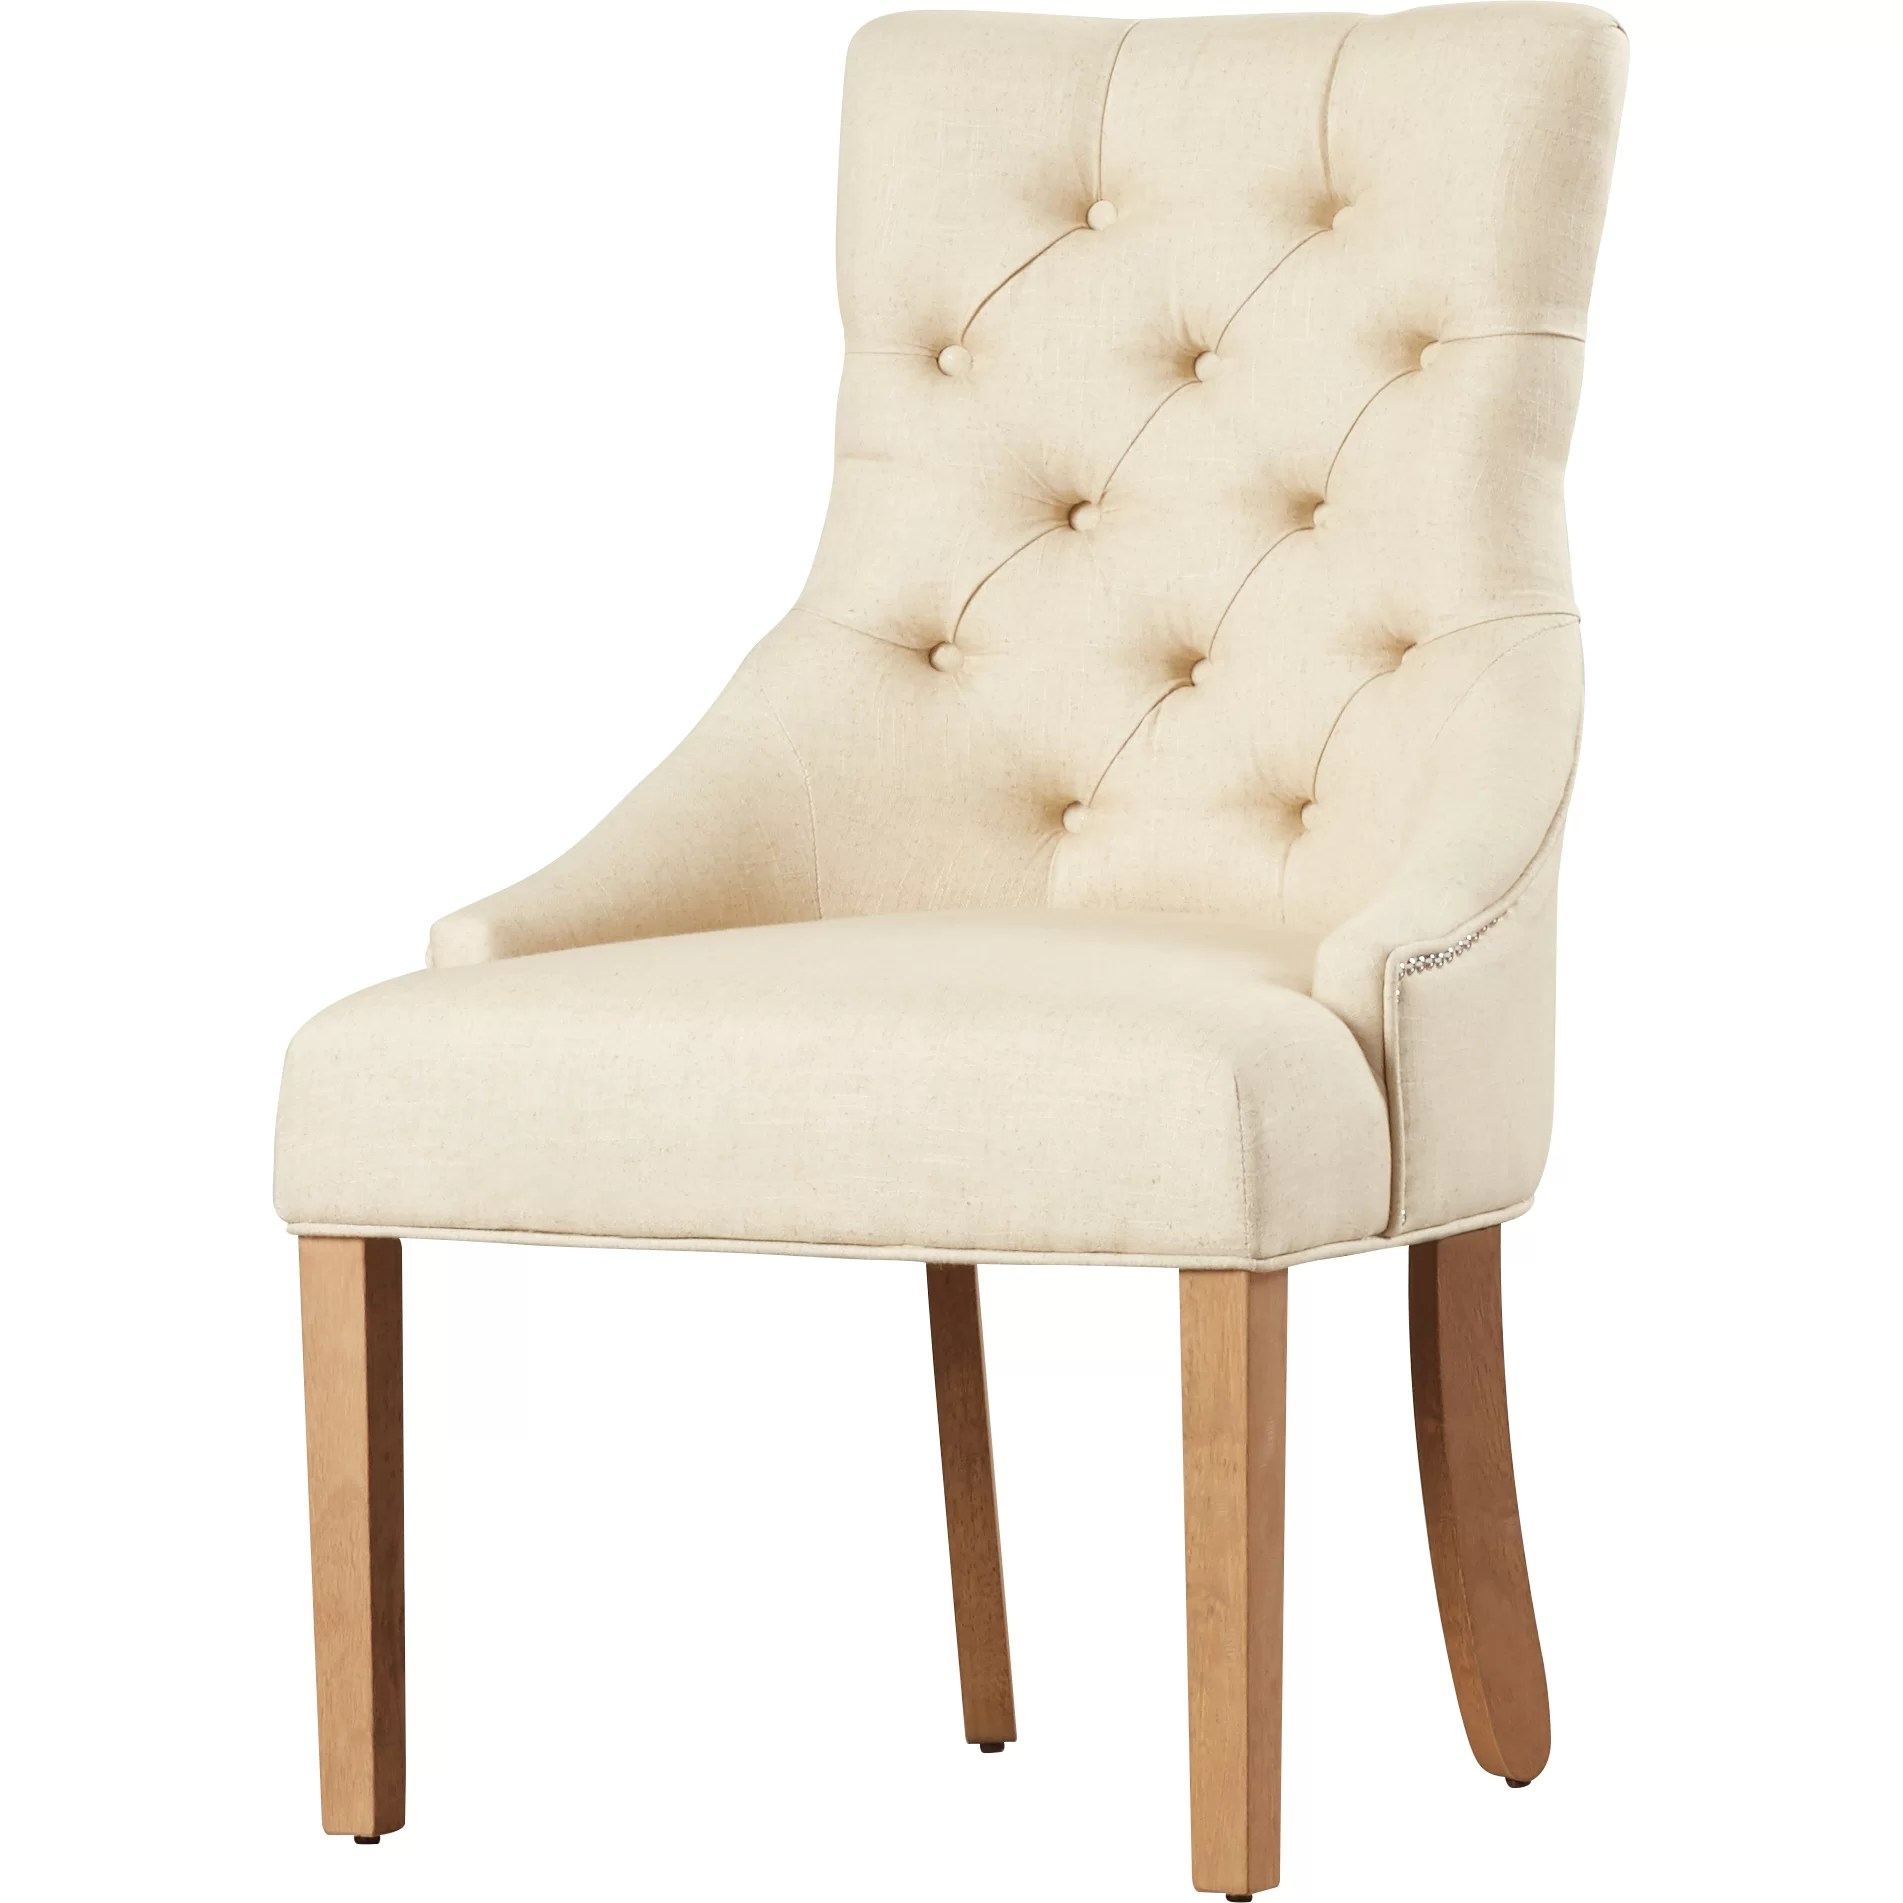 tufted nailhead chair reclining salon white house of hampton jodie parsons